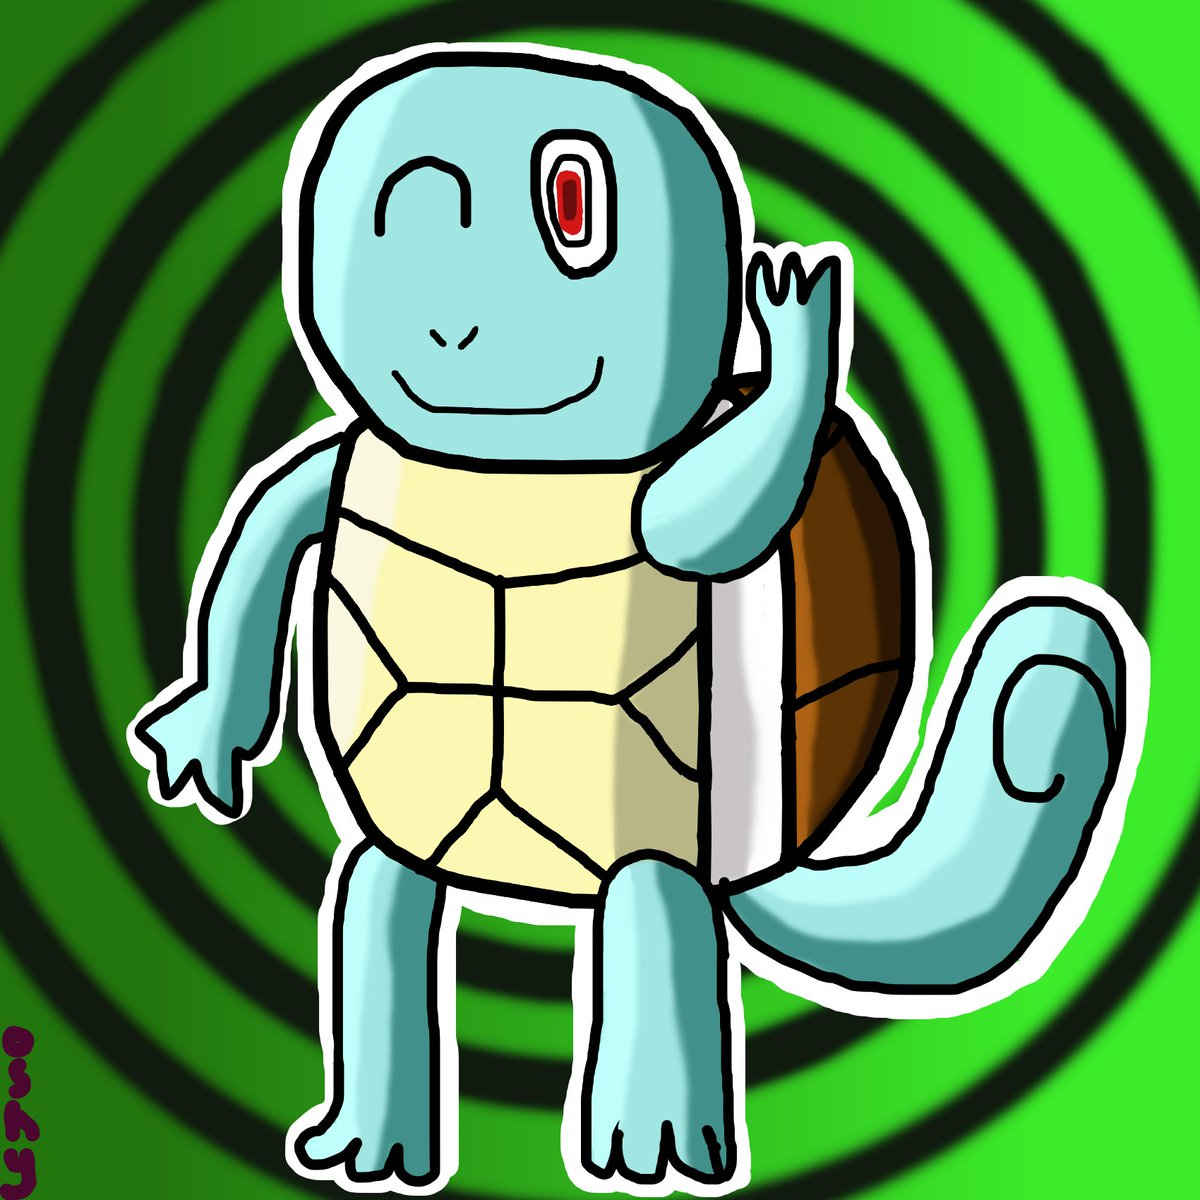 After Seeing The drawing Of Squirtle by @DannyCortoons , I Drew Squirtle a Second Time and A Major Improvement on Drawing Squirtle  #Squirtle #Pokemon25 #Pokemon #drawing